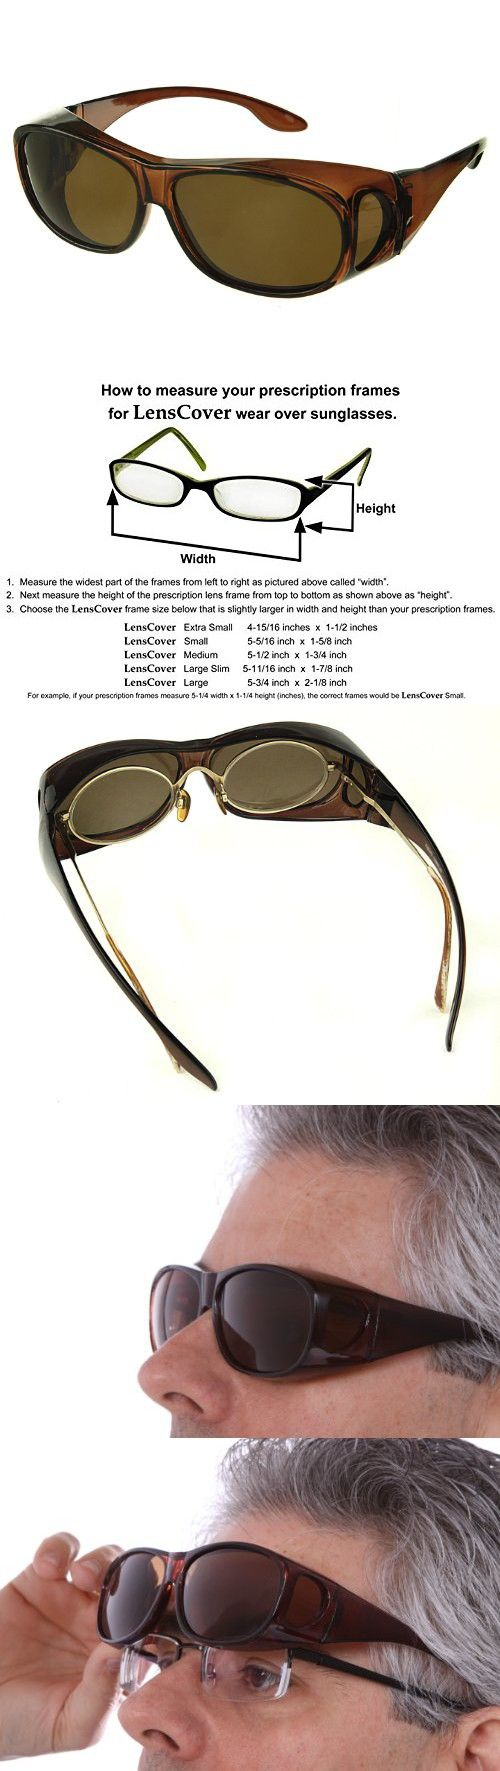 2143500faeee2 LensCovers Sunglasses Wear Over Prescription Glasses. Polarized Size Medium.